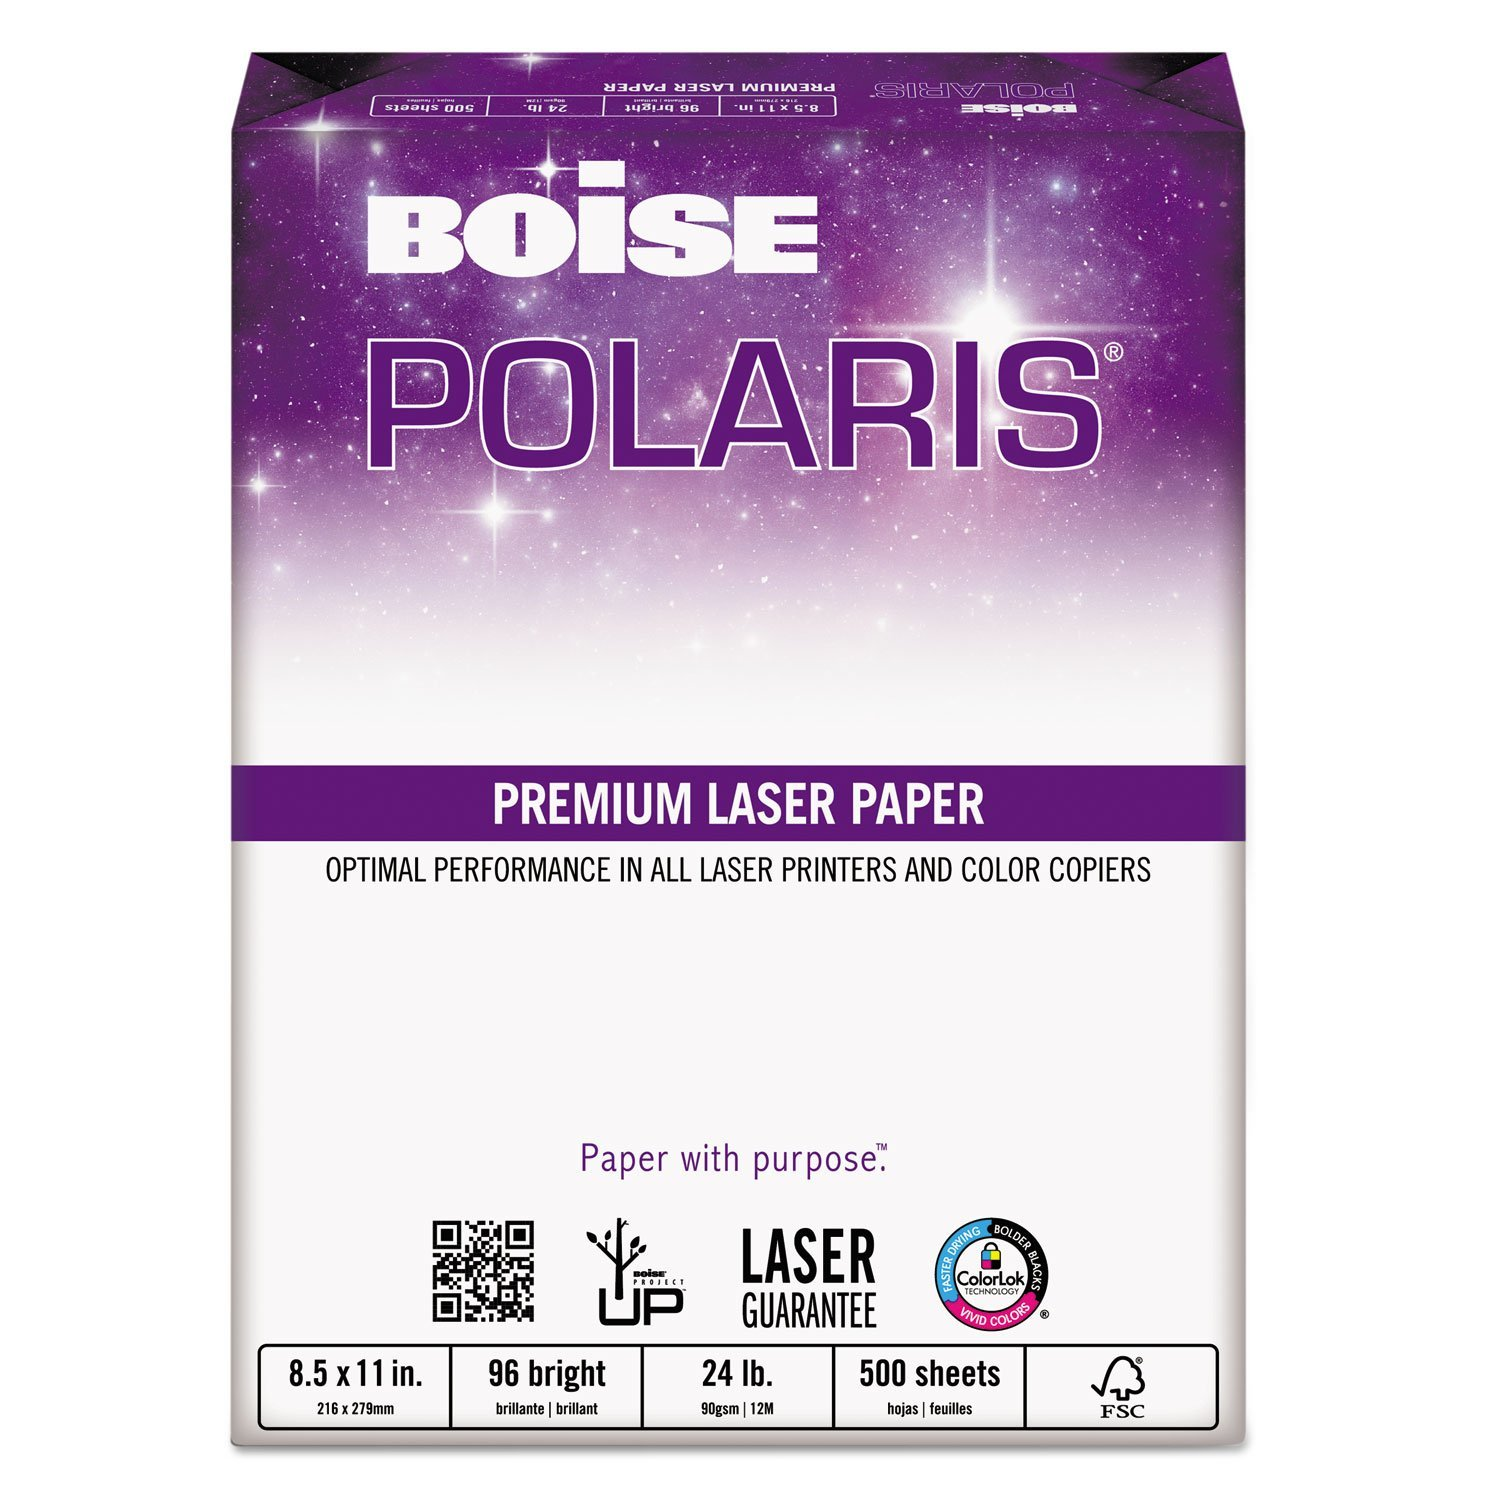 BPL-0117 HD:P Presentation Laser Paper, 24-lb., 11 x 17, 500 Sheets per Ream, White office paper with smooth finish and a 96 GE brightness rating for.., By Boise